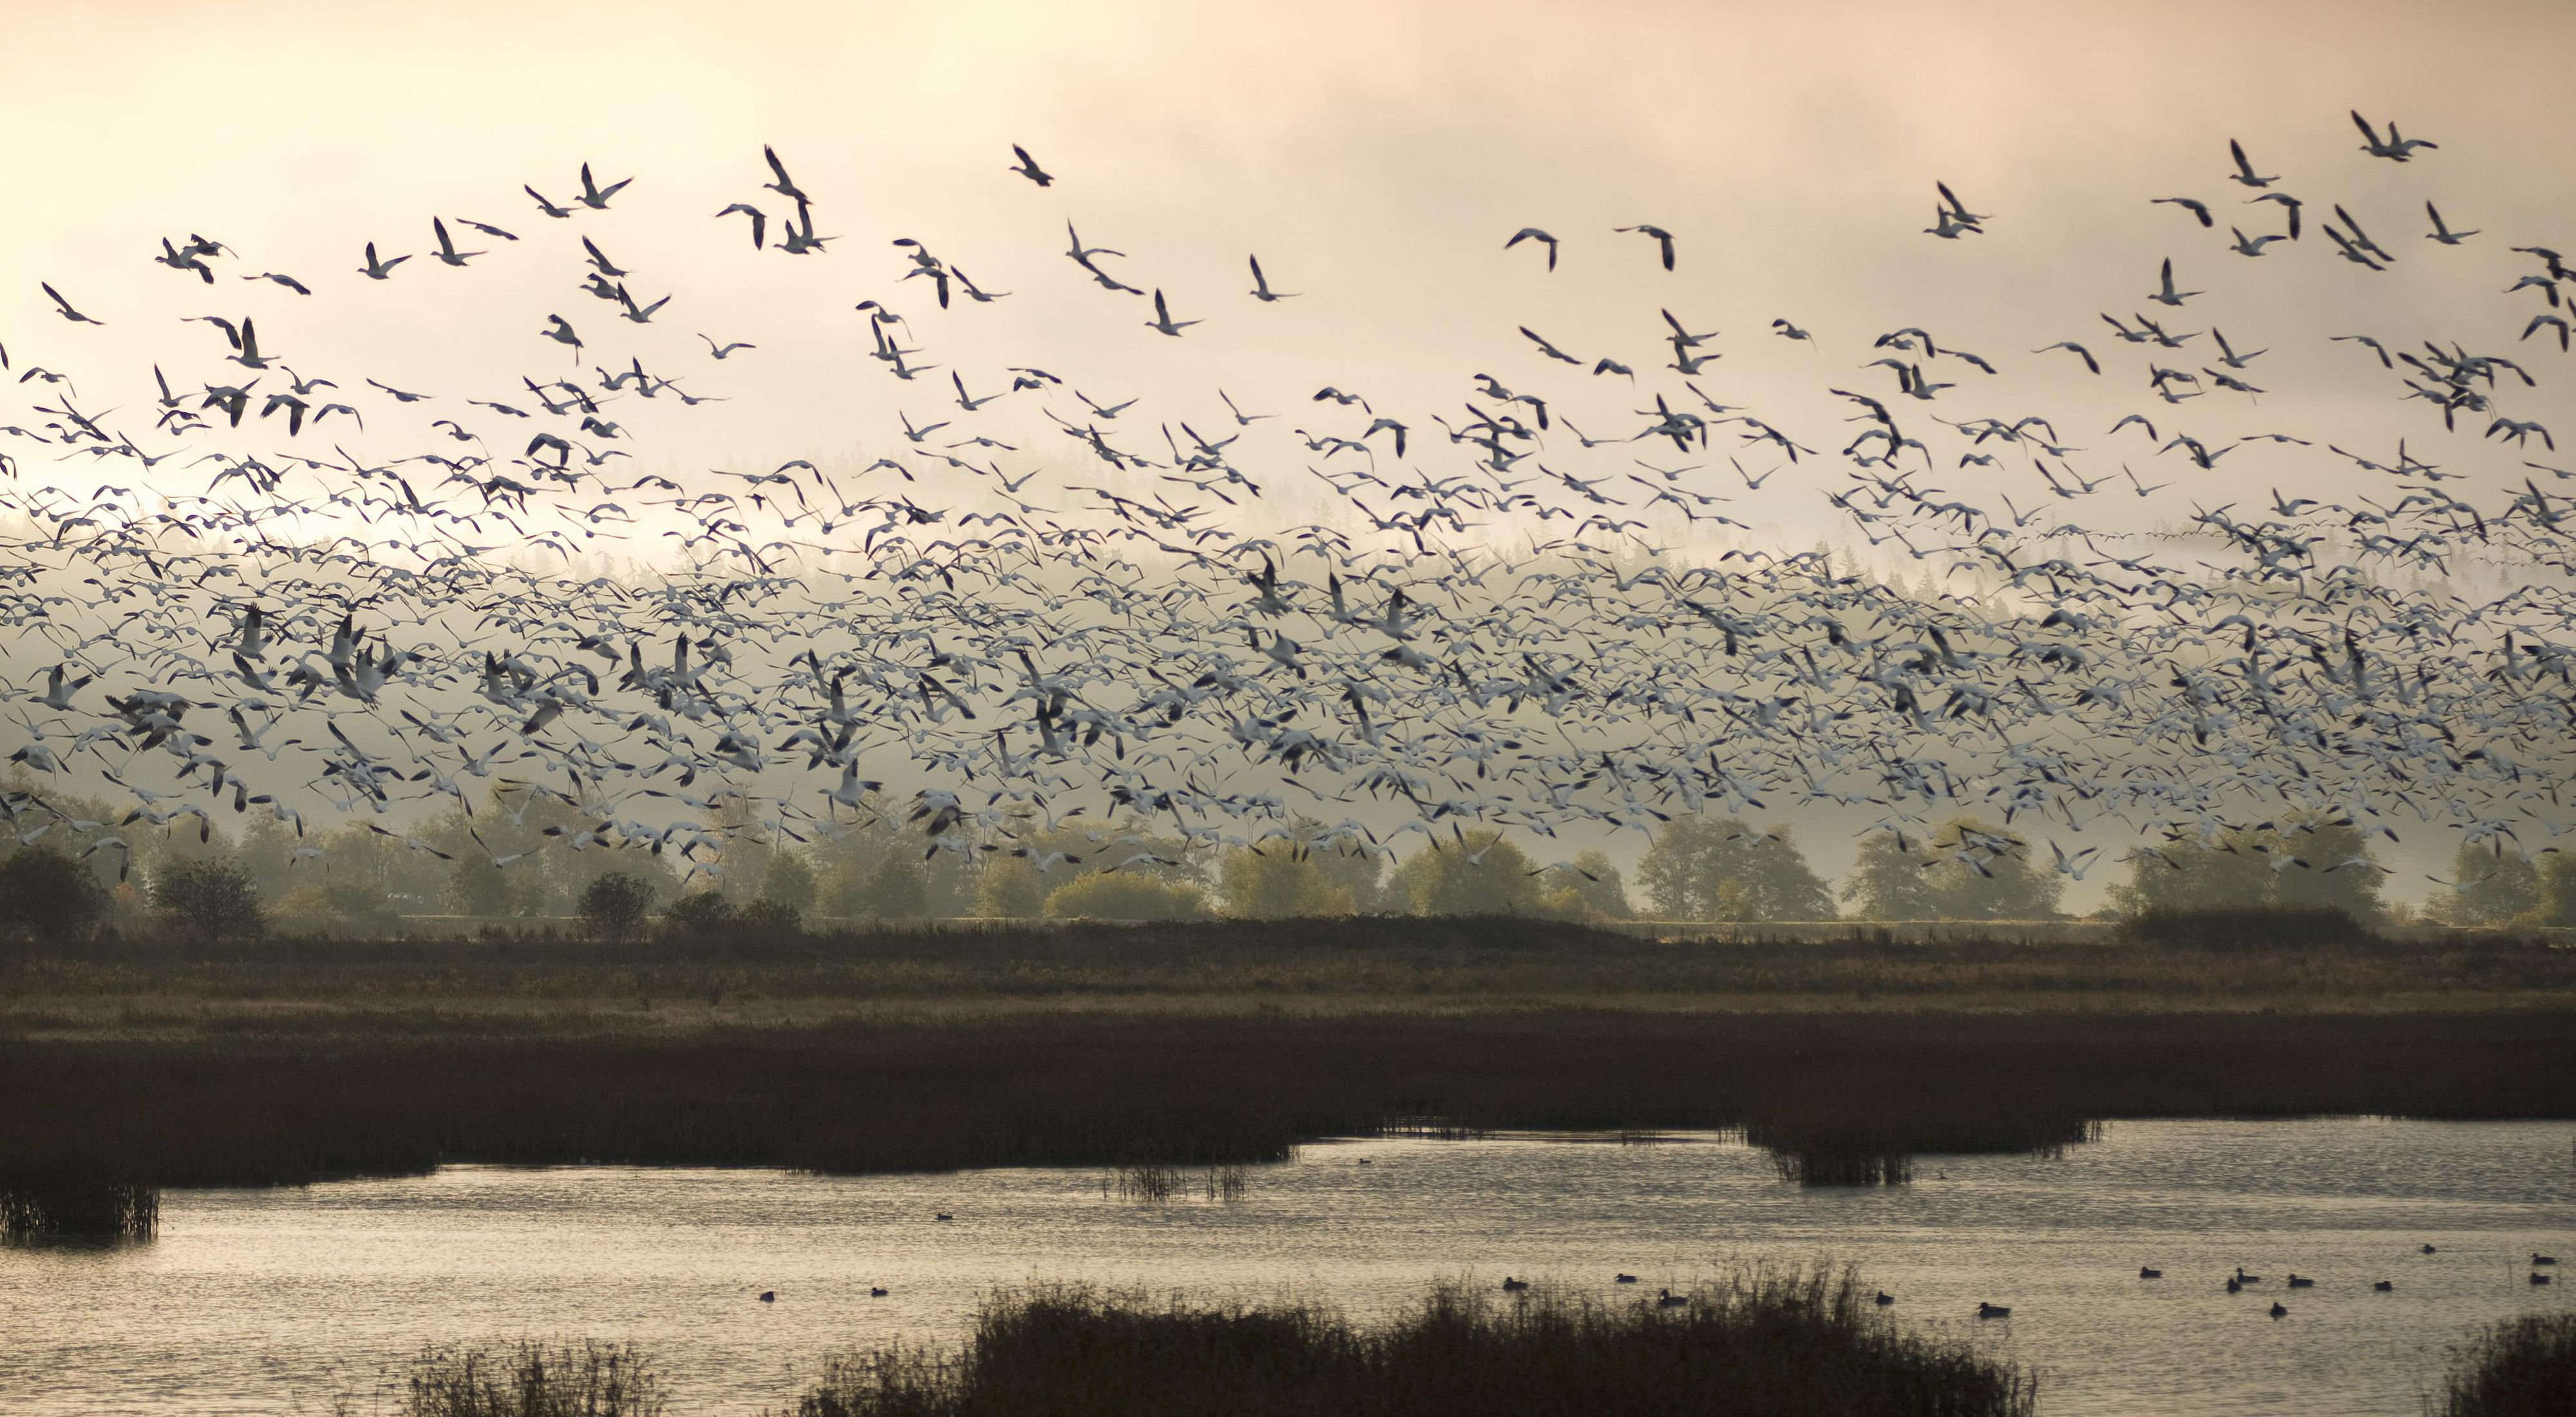 Hundreds of birds fly over Port Susan Bay in Washington State during sunset.